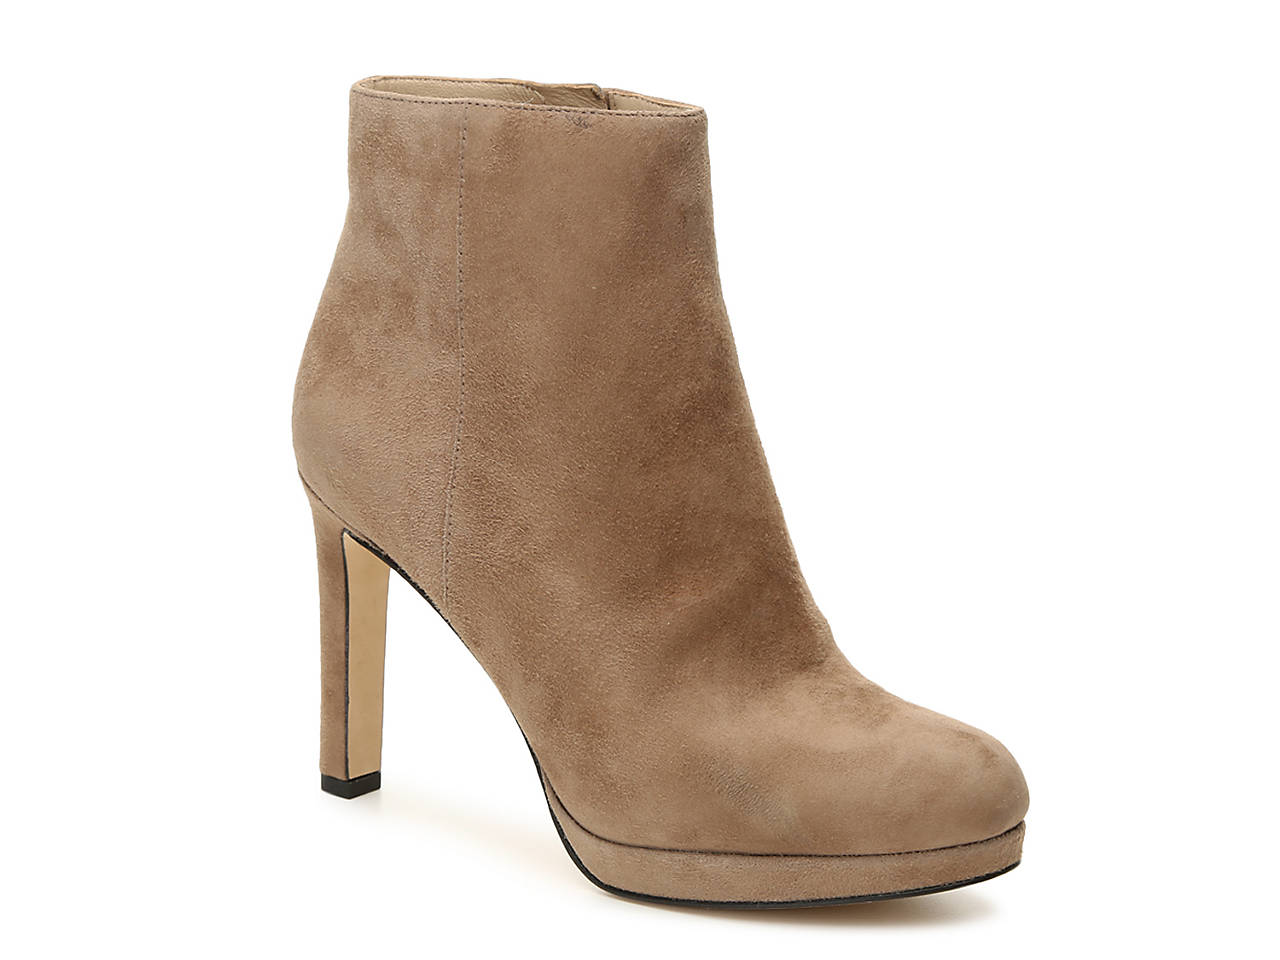 clearance how much Via Spiga Bettie Suede Booties outlet websites find great online deals sale online fglqC